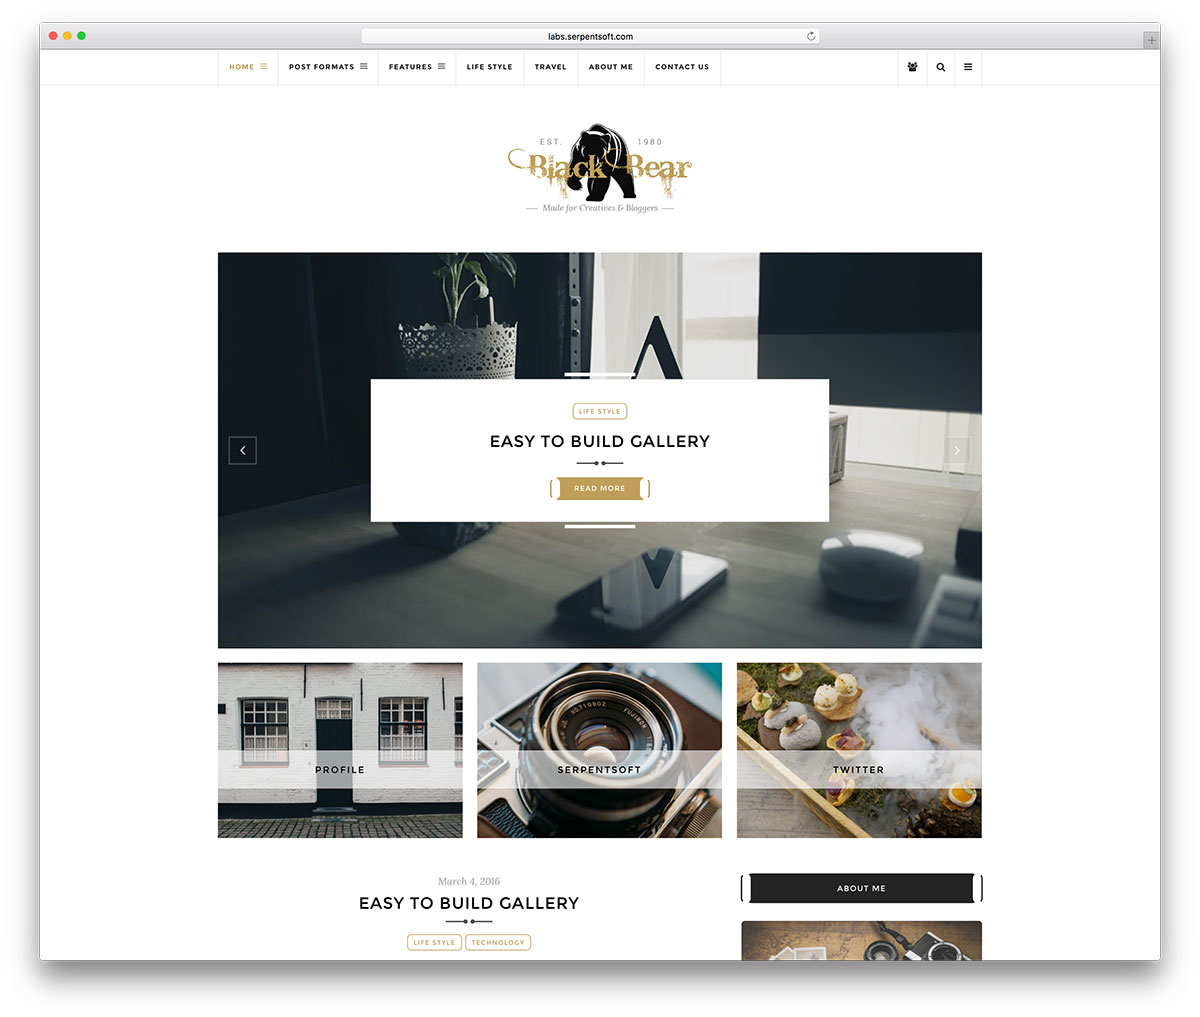 blackbear-simple-wordpress-blog-website-template